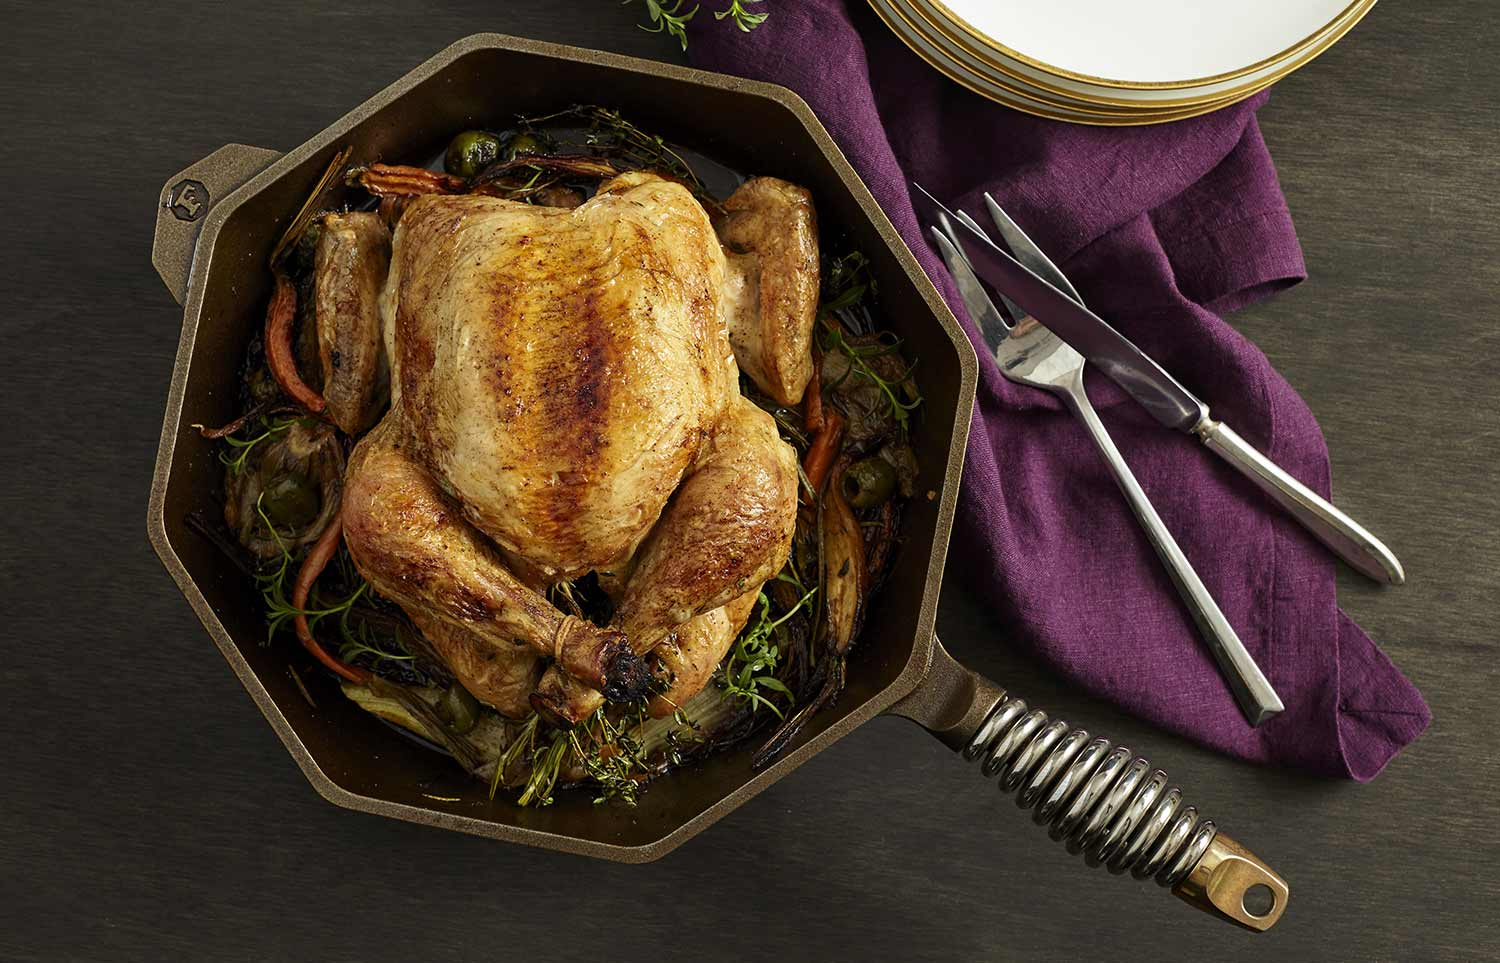 FINEX baked whole chicken recipe